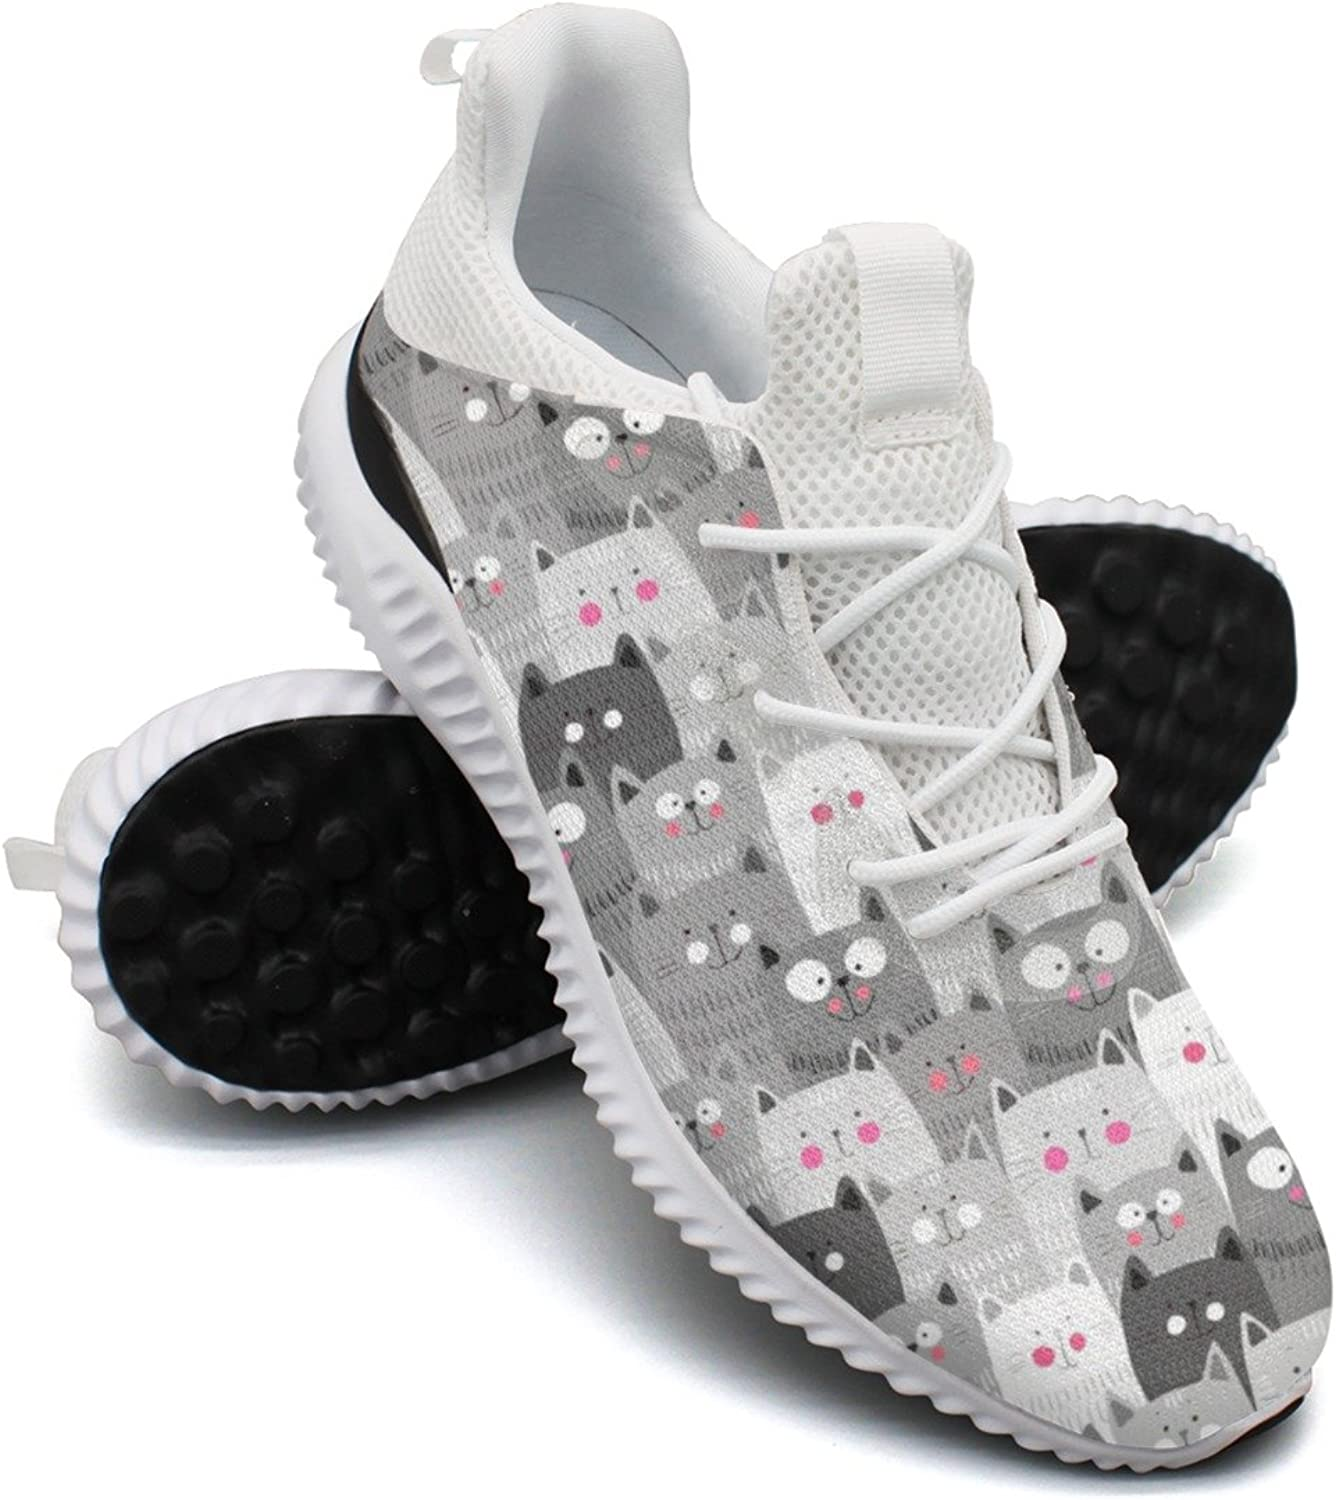 Large Cats Leisure Design Running shoes Womens Net Cool Gift